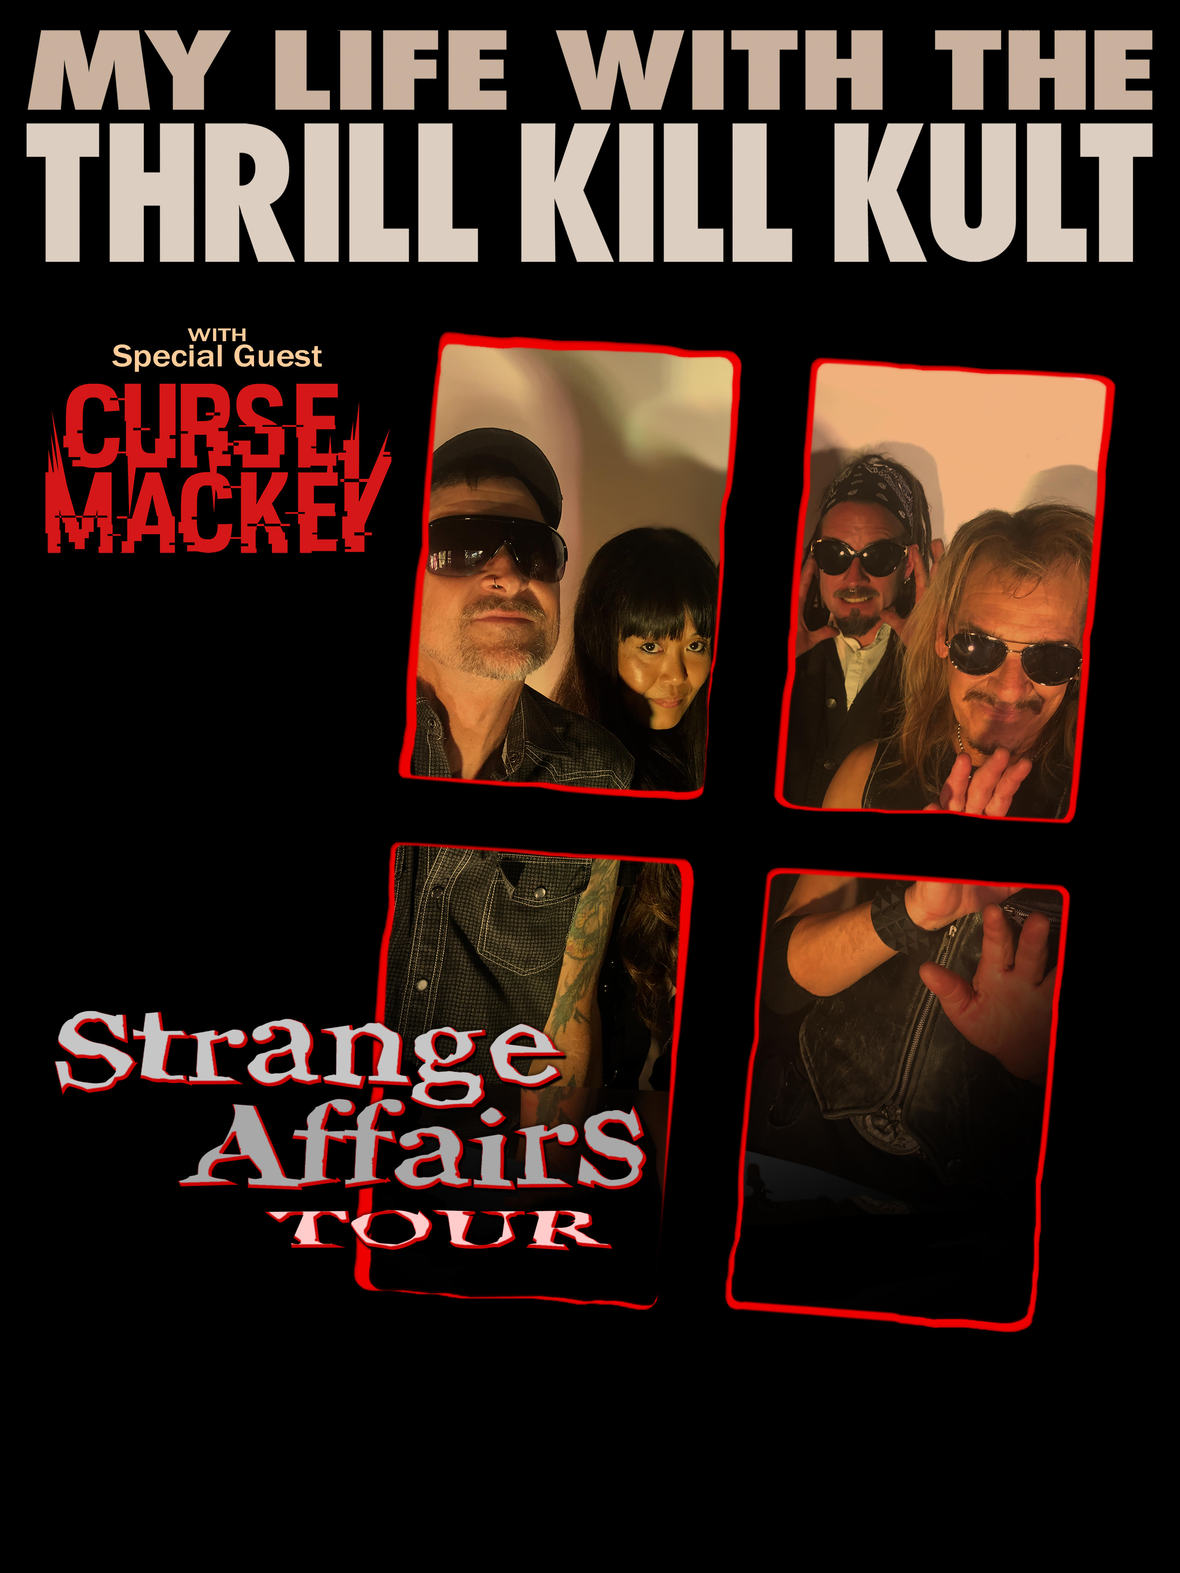 My Life With The Thrill Kill Kult Announce SpringDates